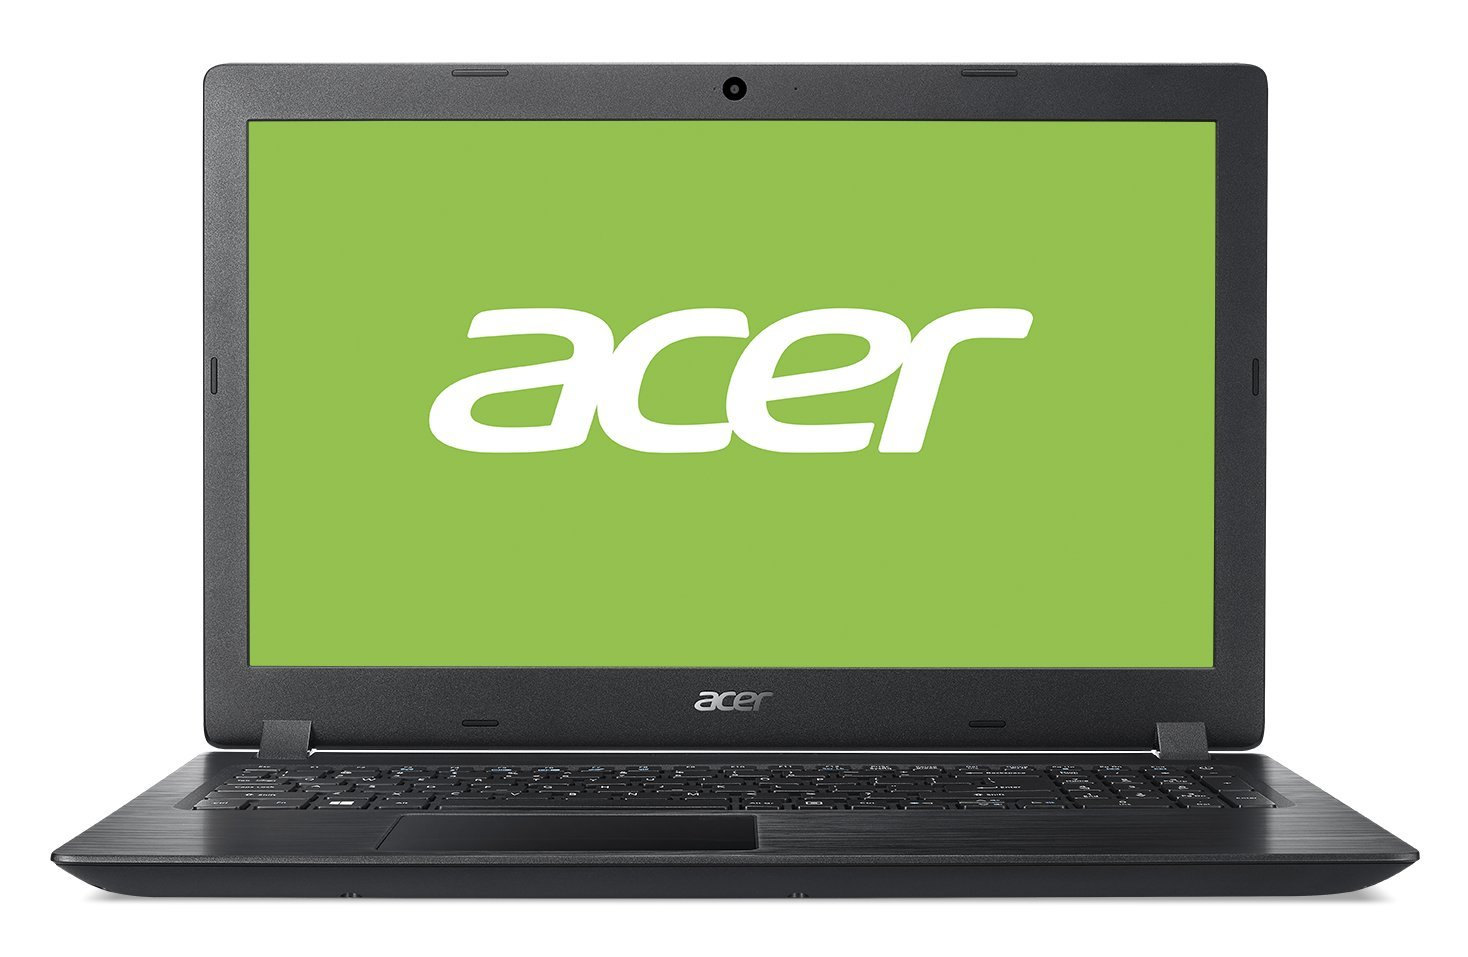 Acer Aspire A315-31-C873 - Intel Celeron N3350, 4 GB RAM, 1 TB HDD, Intel HD Graphics, Windows 10